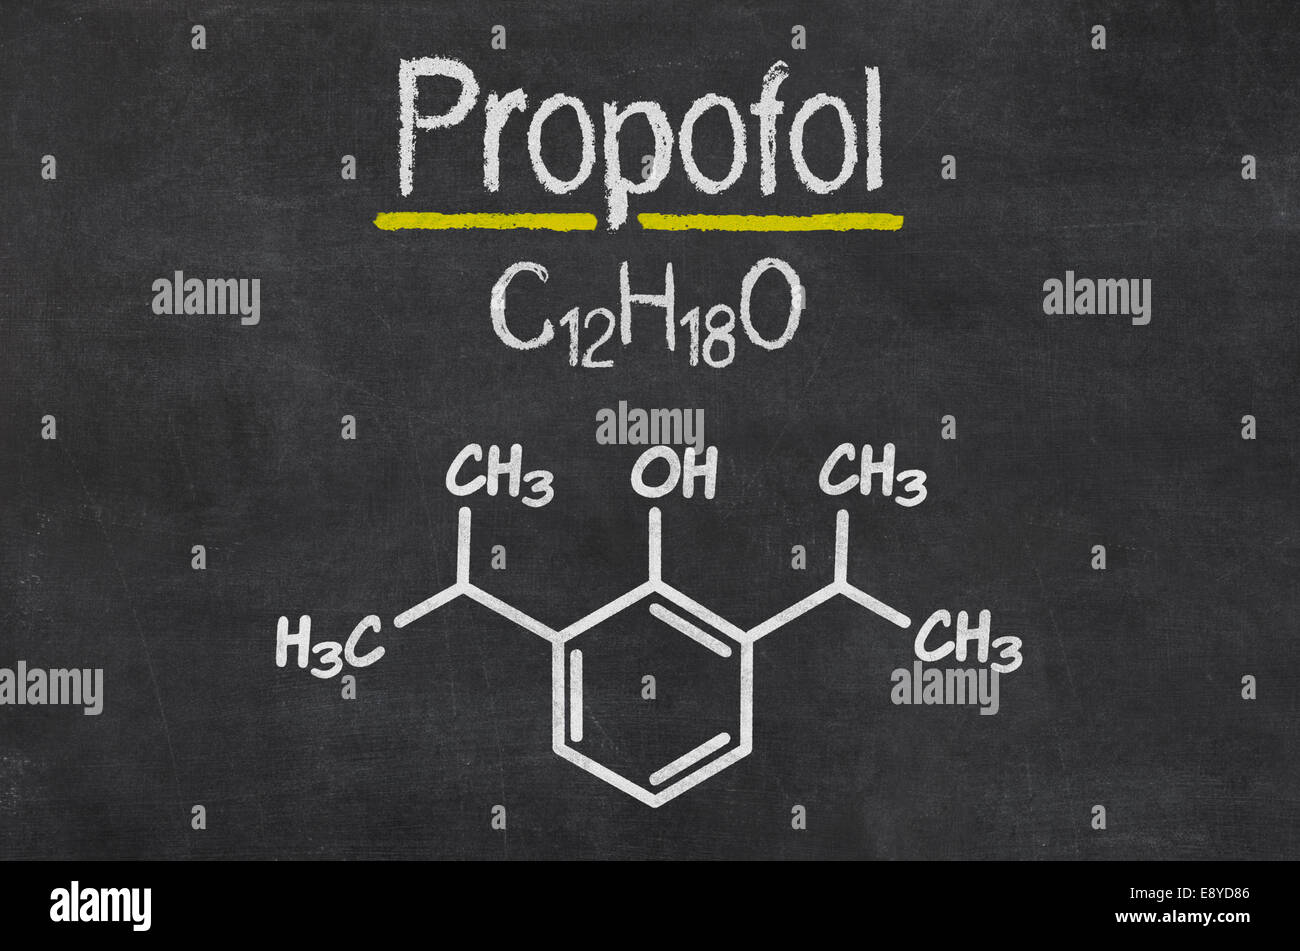 Blackboard with the chemical formula of Propofol - Stock Image